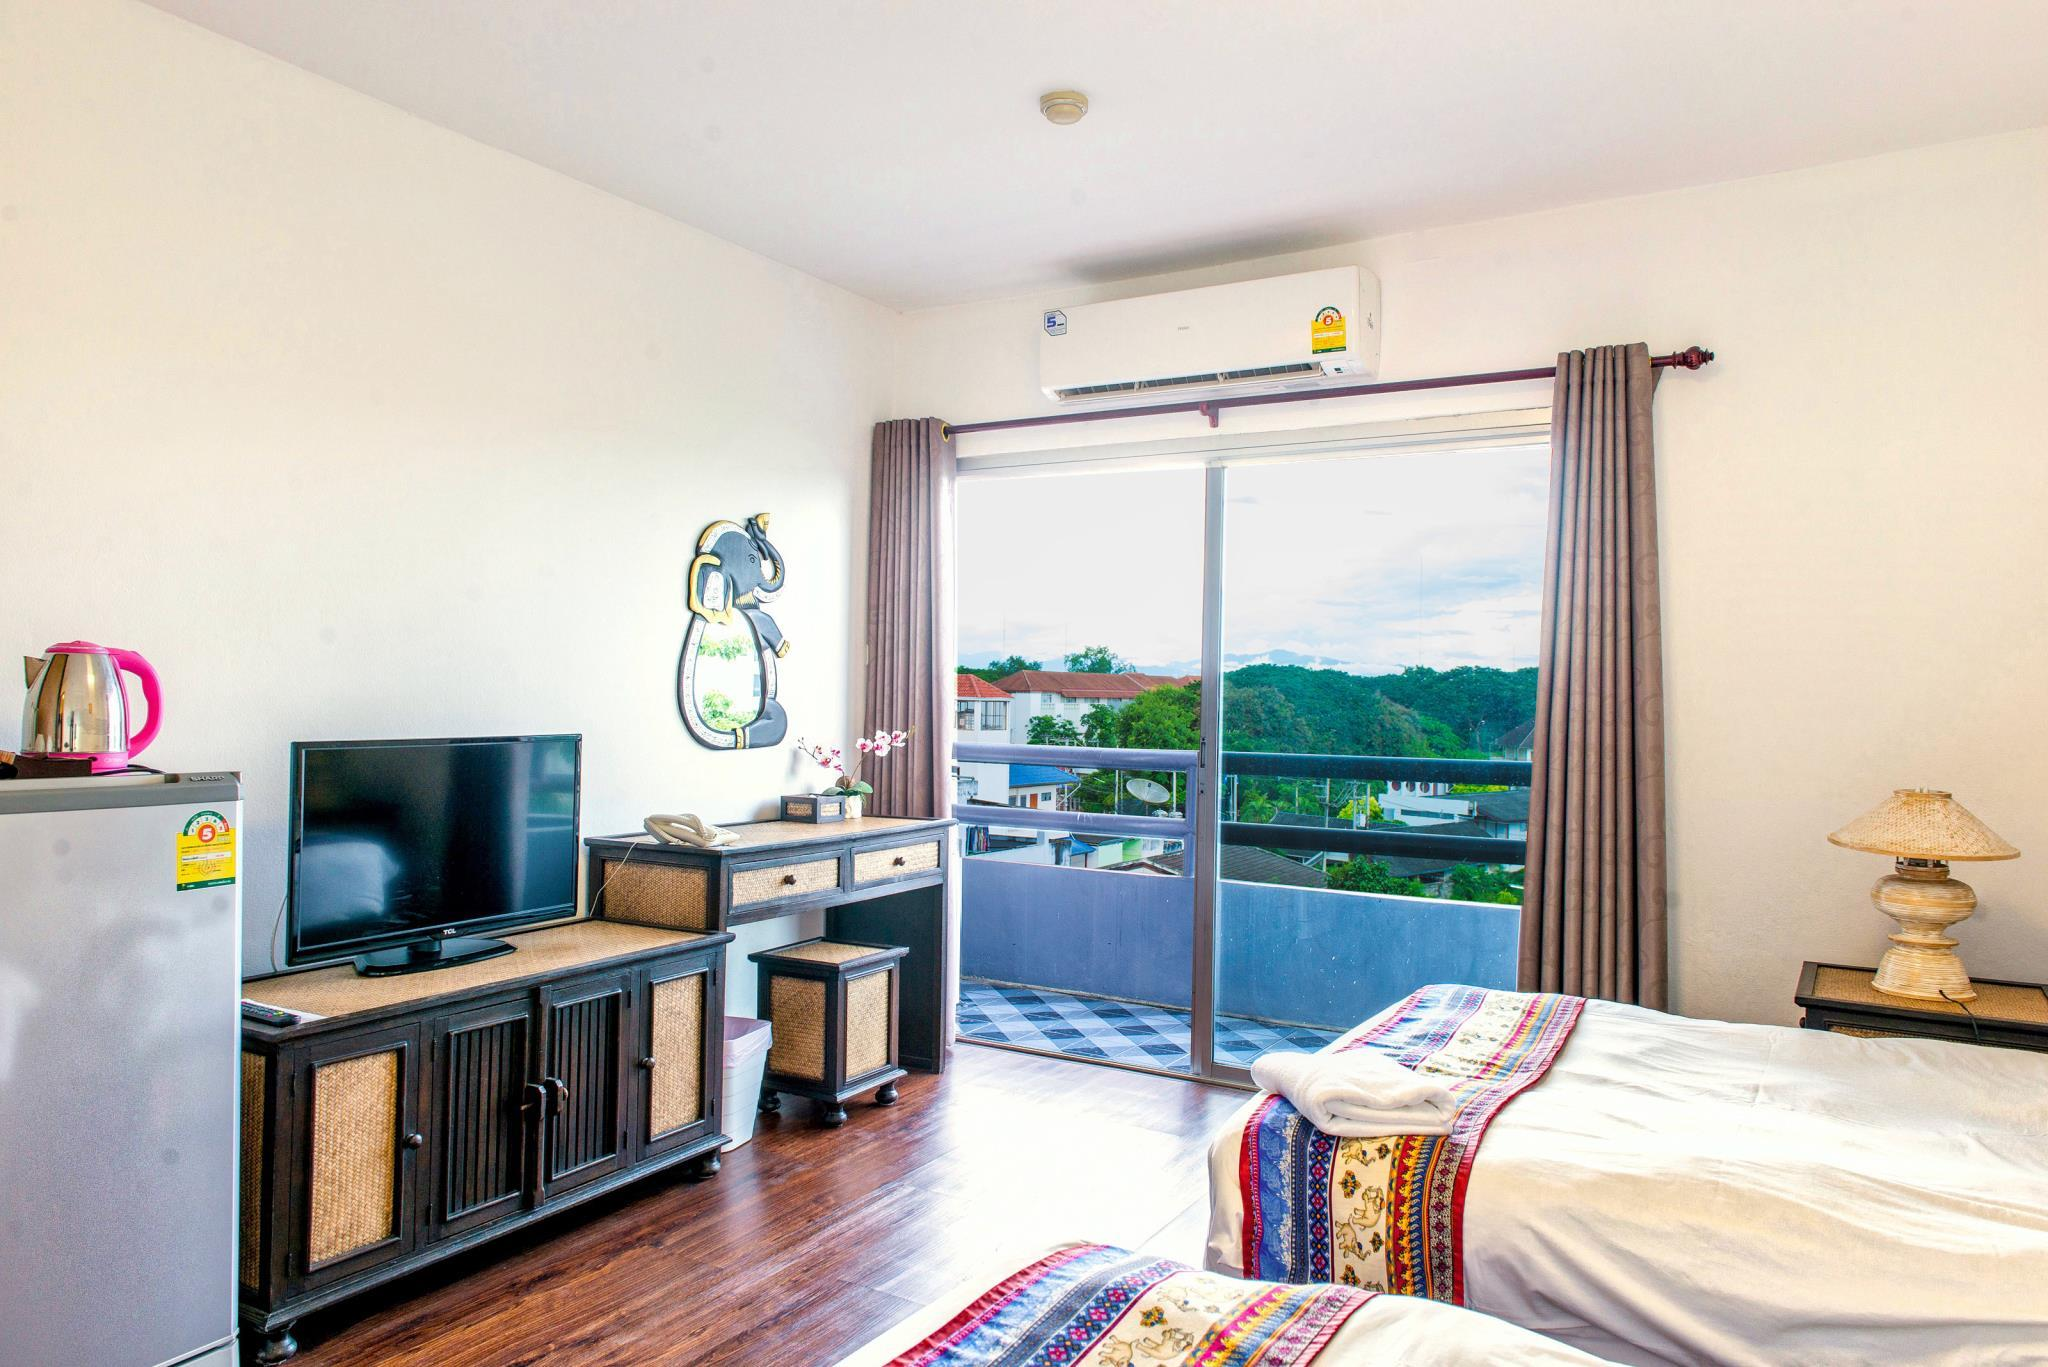 Best Price on Jade Tower Downtown in Chiang Mai + Reviews